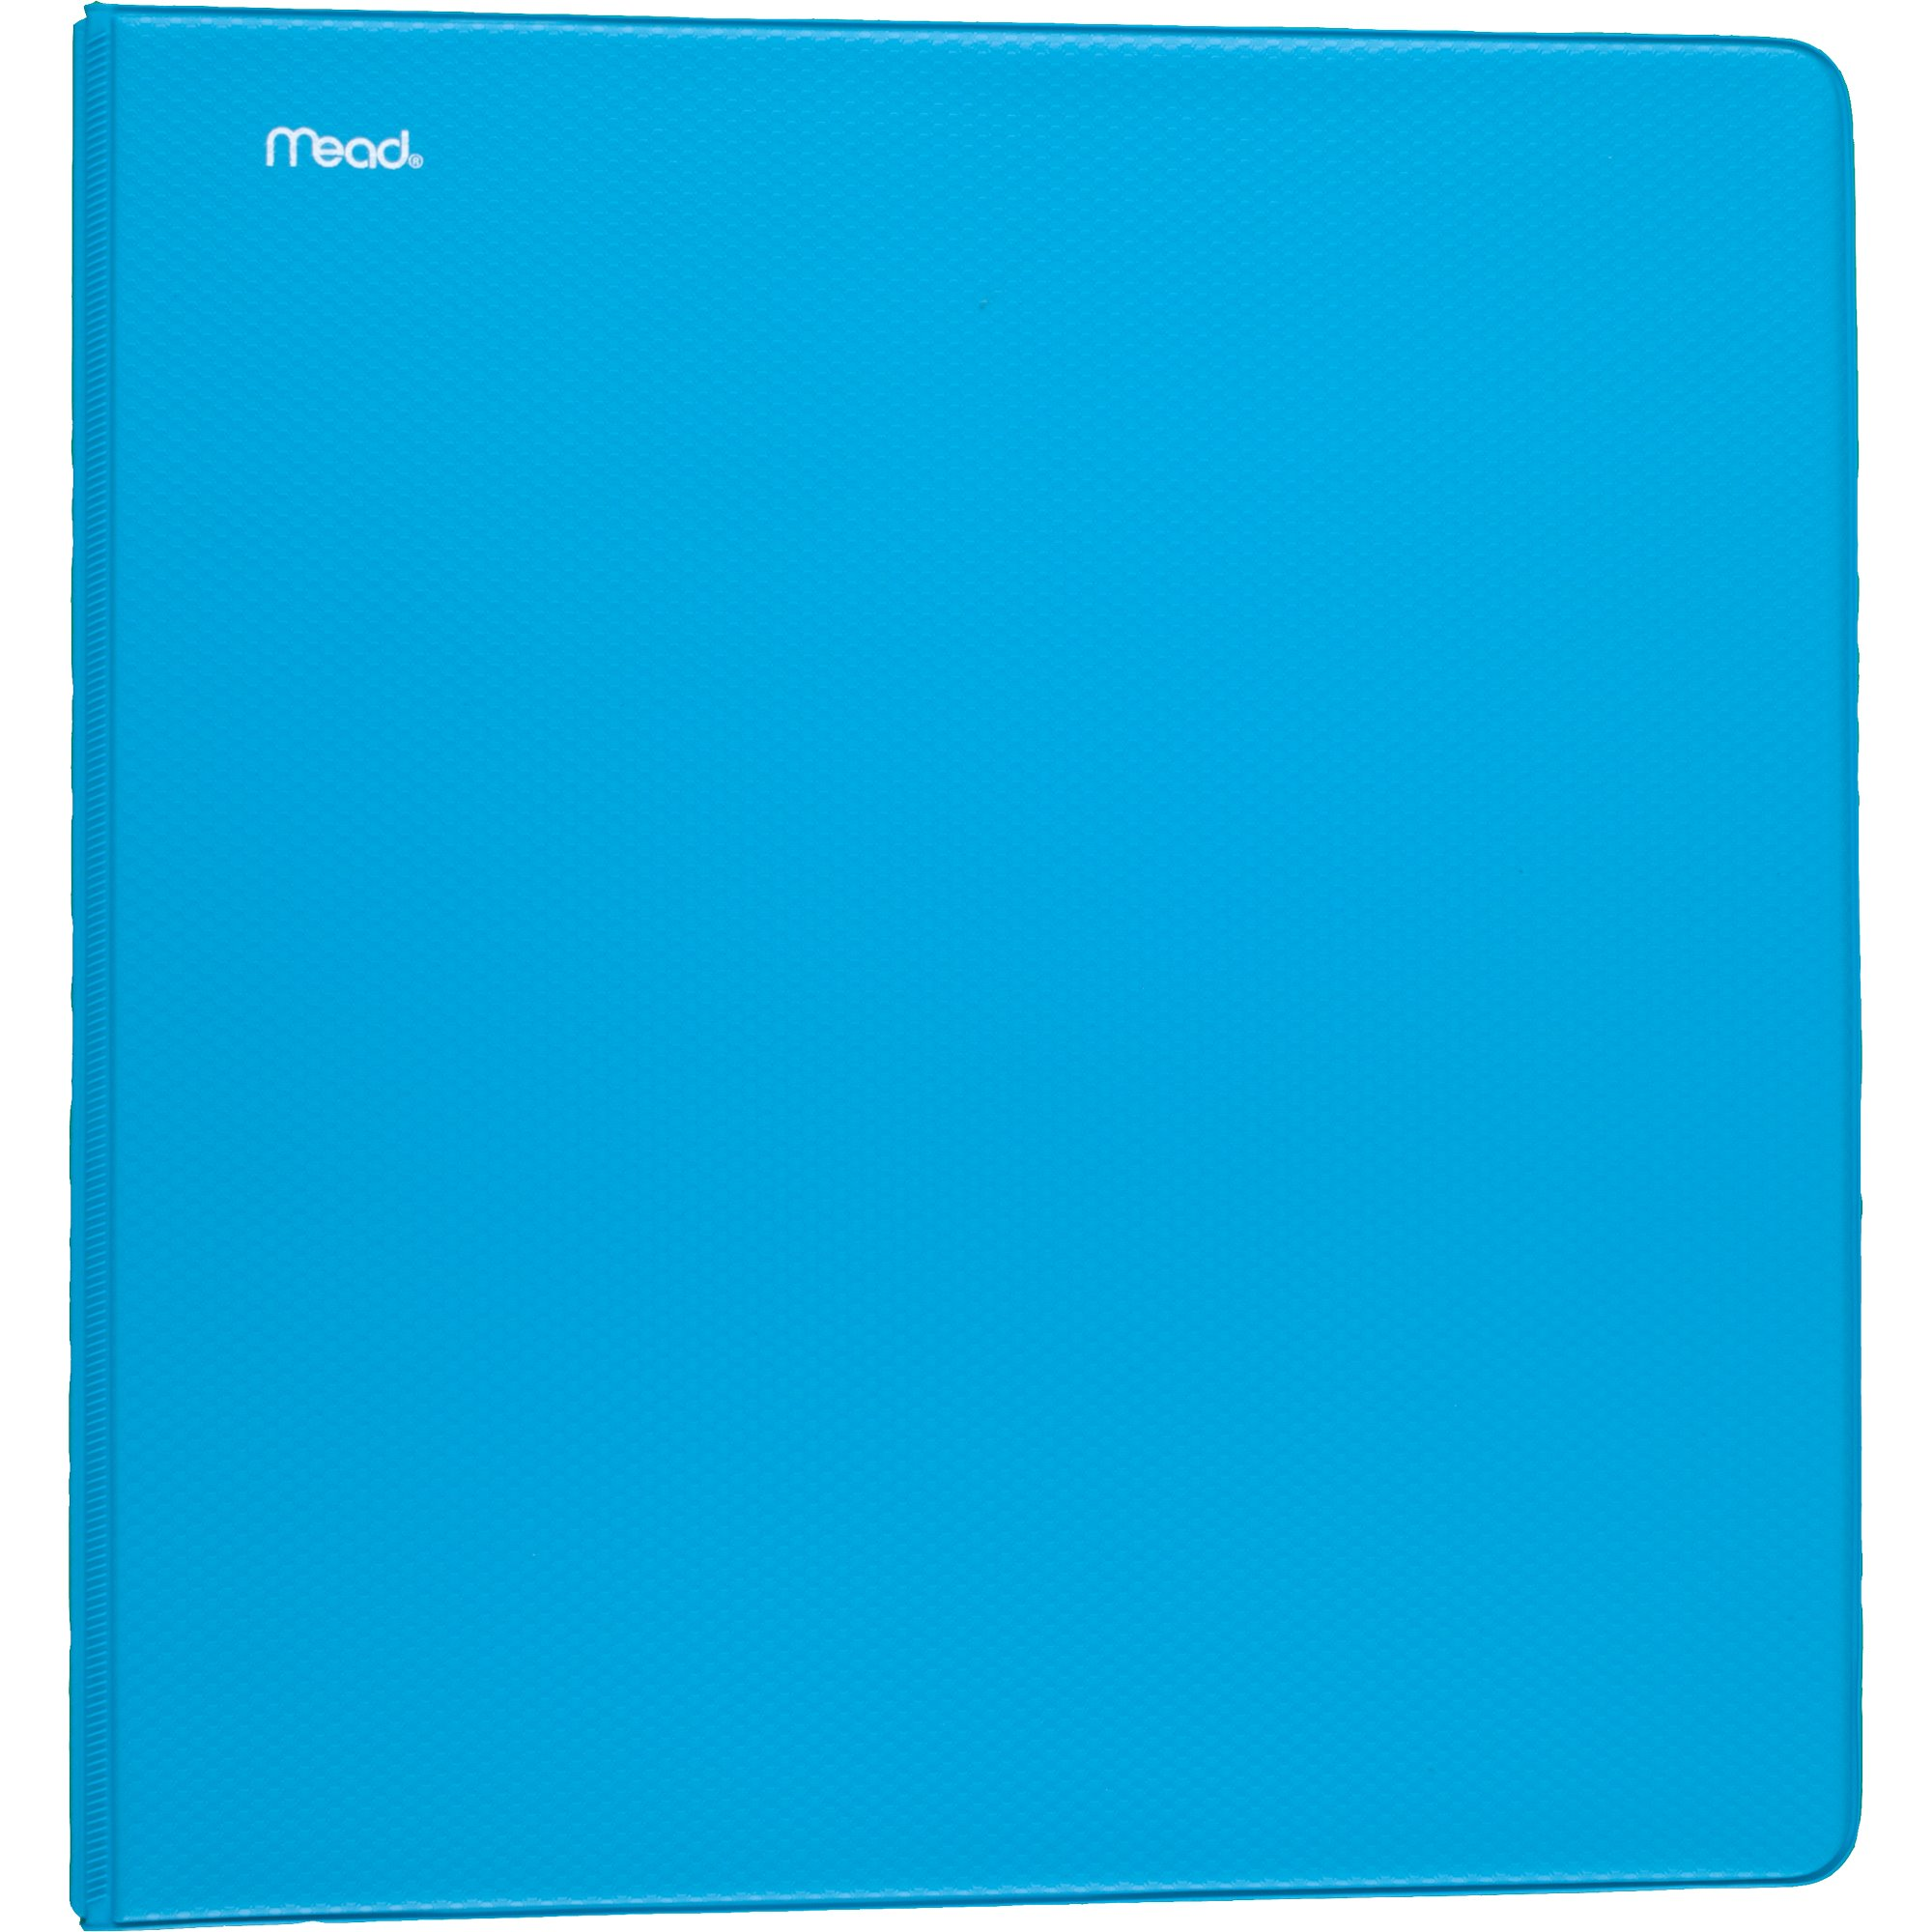 Mead Tri-Fold 1.5 inch Binder Binders by Mead